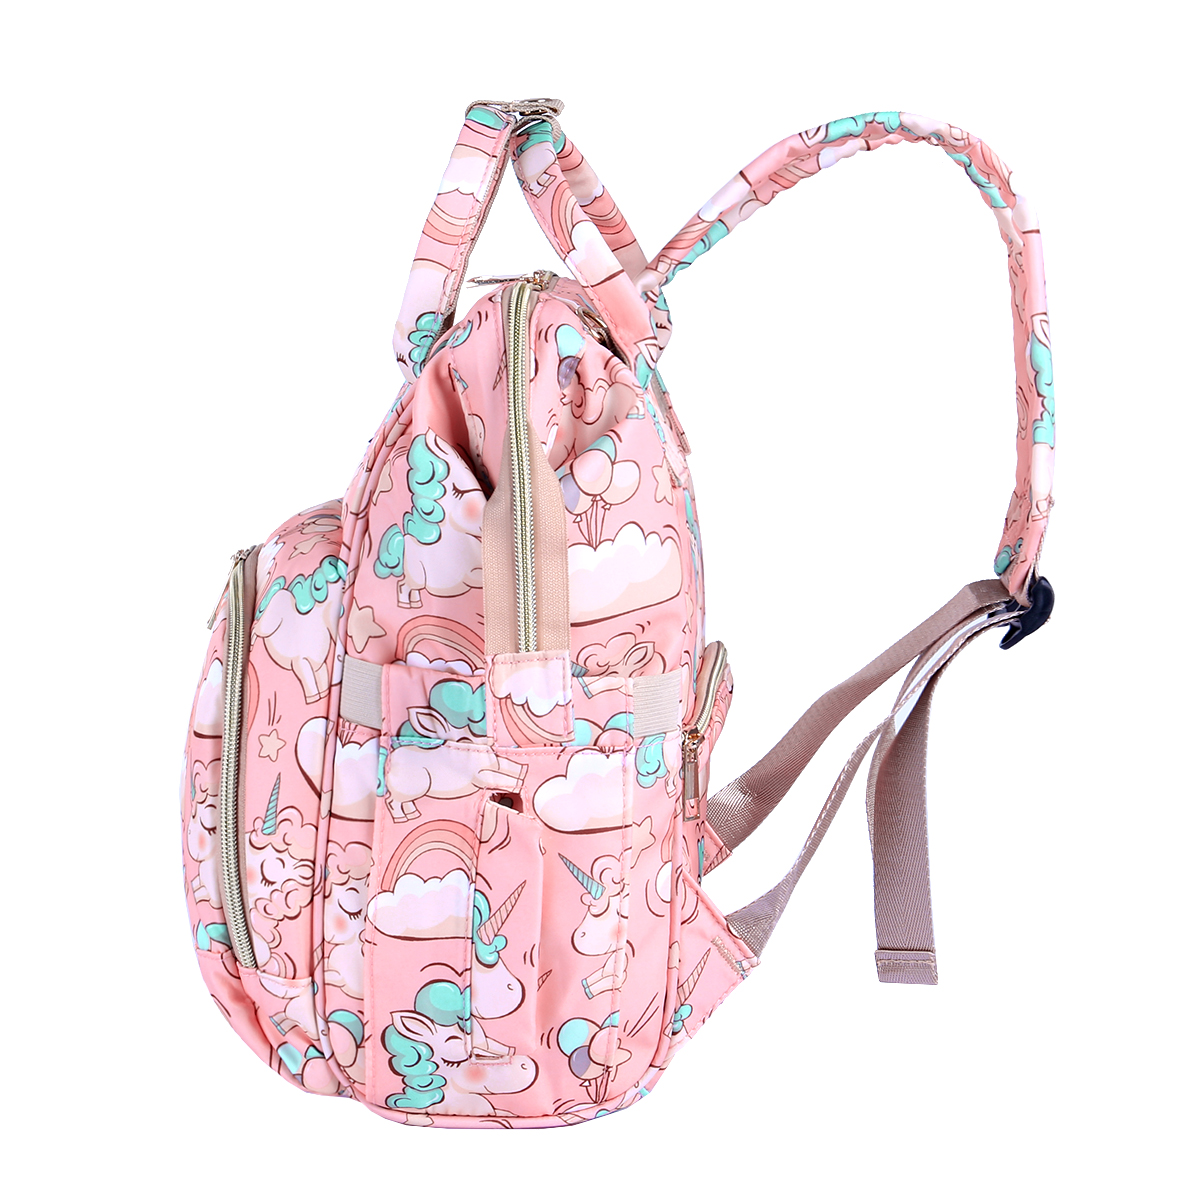 H4d0d87e1cd124b8fb67d407136659fdcJ Diaper Bag Backpack For Moms Waterproof Large Capacity Stroller Diaper Organizer Unicorn Maternity Bags Nappy Changing Baby Bag